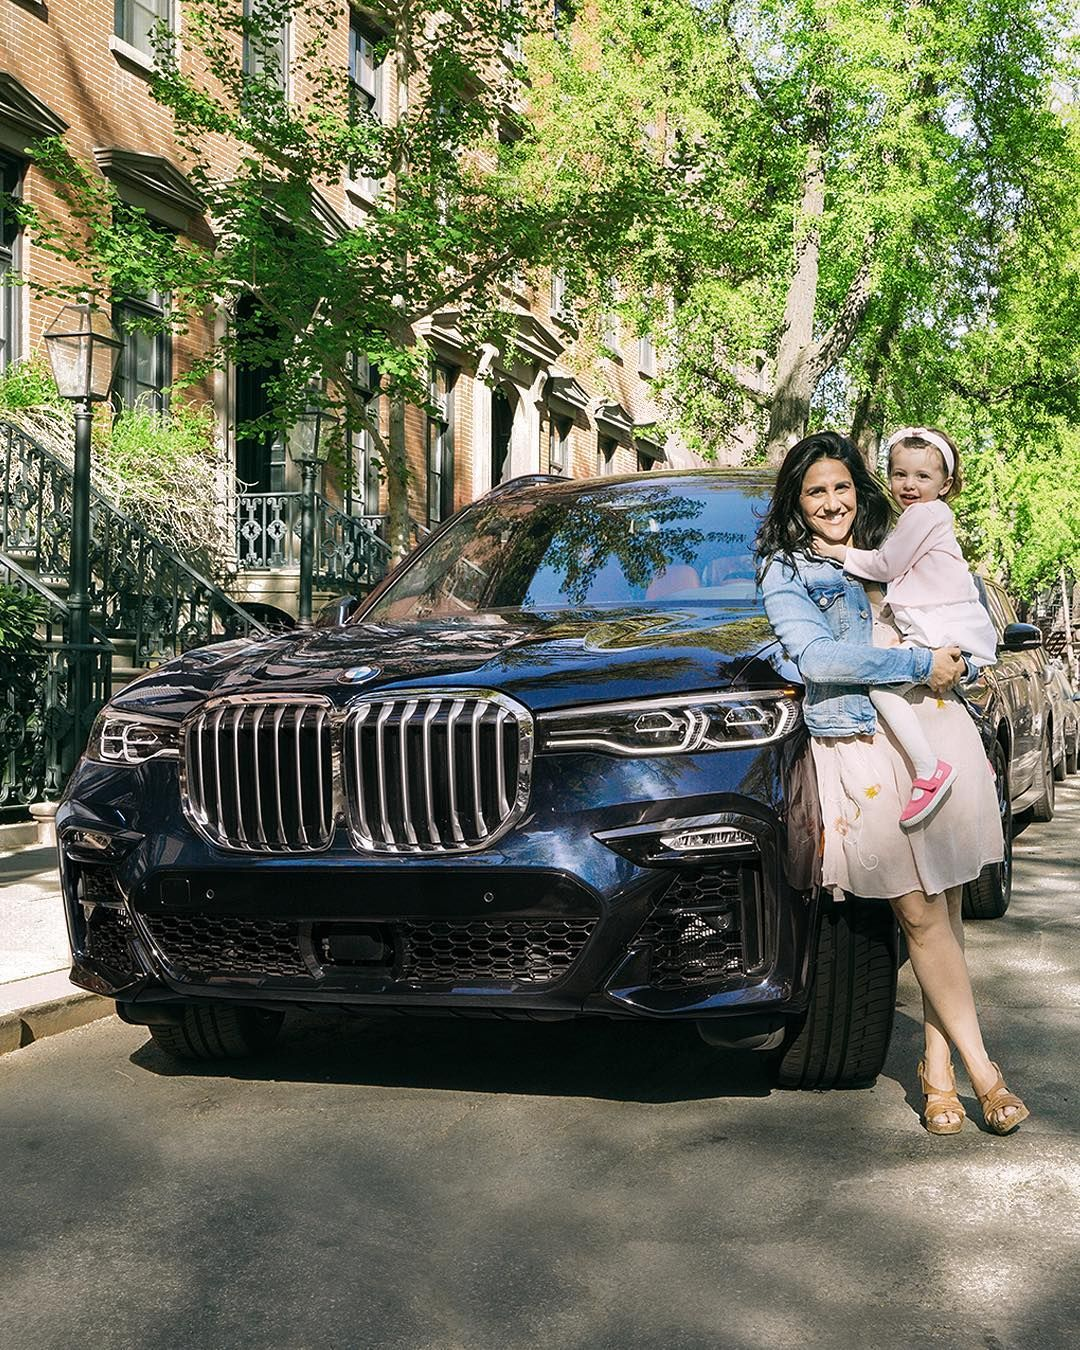 From Bmw They Raise Kids Businesses And The Bar For All Of Us Bmw Wants To Celebrate Your Power Mom Cheer Her On By Posting A Photo Bmw Photo Kids